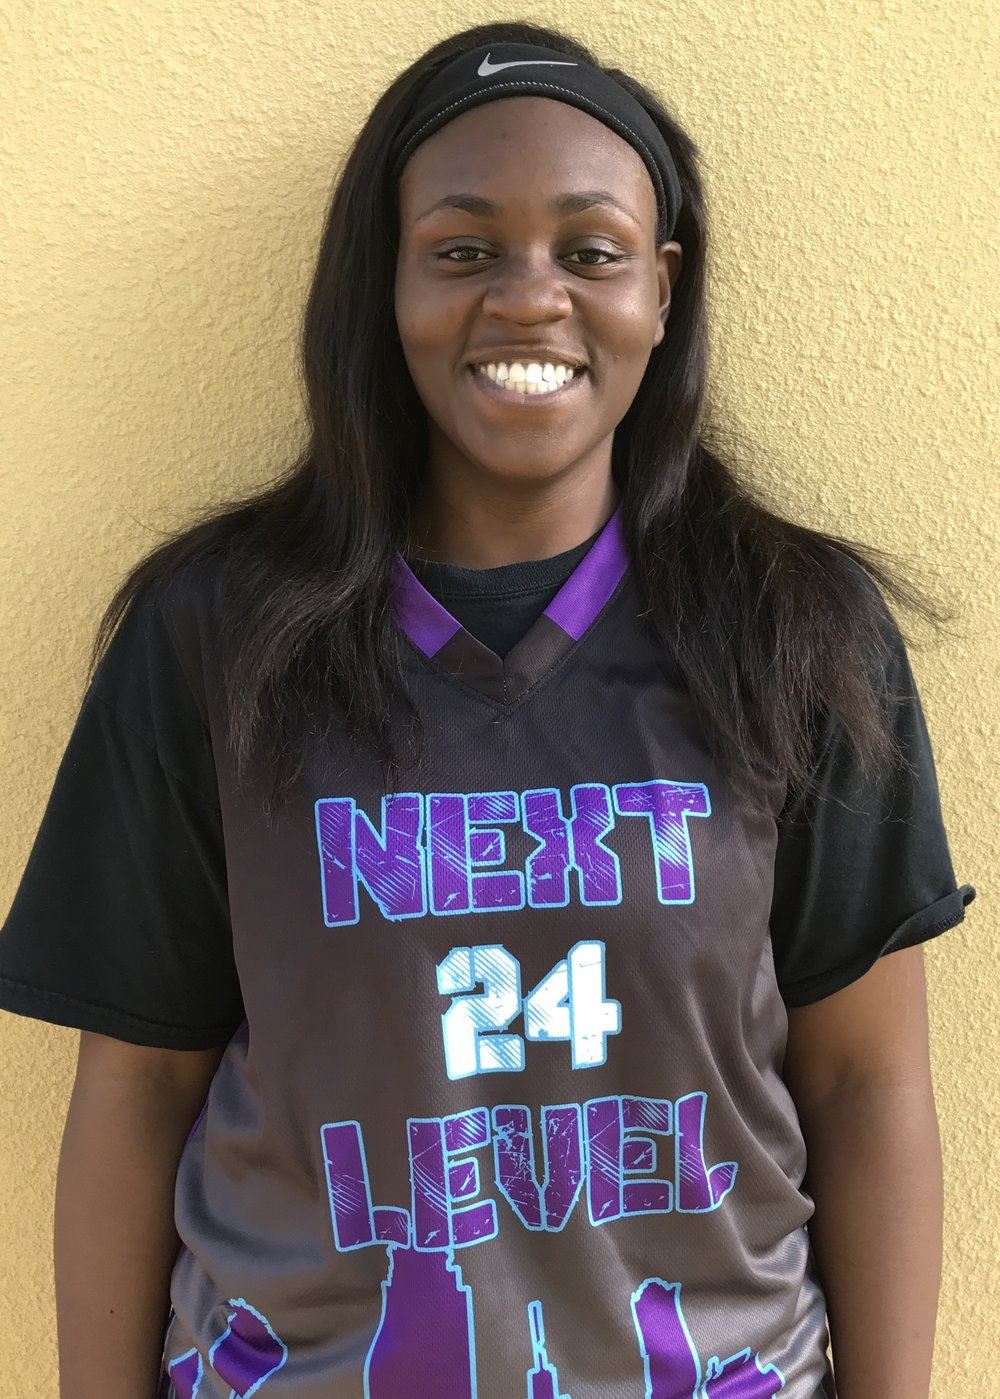 Katyelynn Hughes #24    School:Hightower High School    Grade: 9th    Height: 5'5    Weight:190    Position: Post    Top 5 Colleges: UT, TCU, HBU, Texas State, Baylor